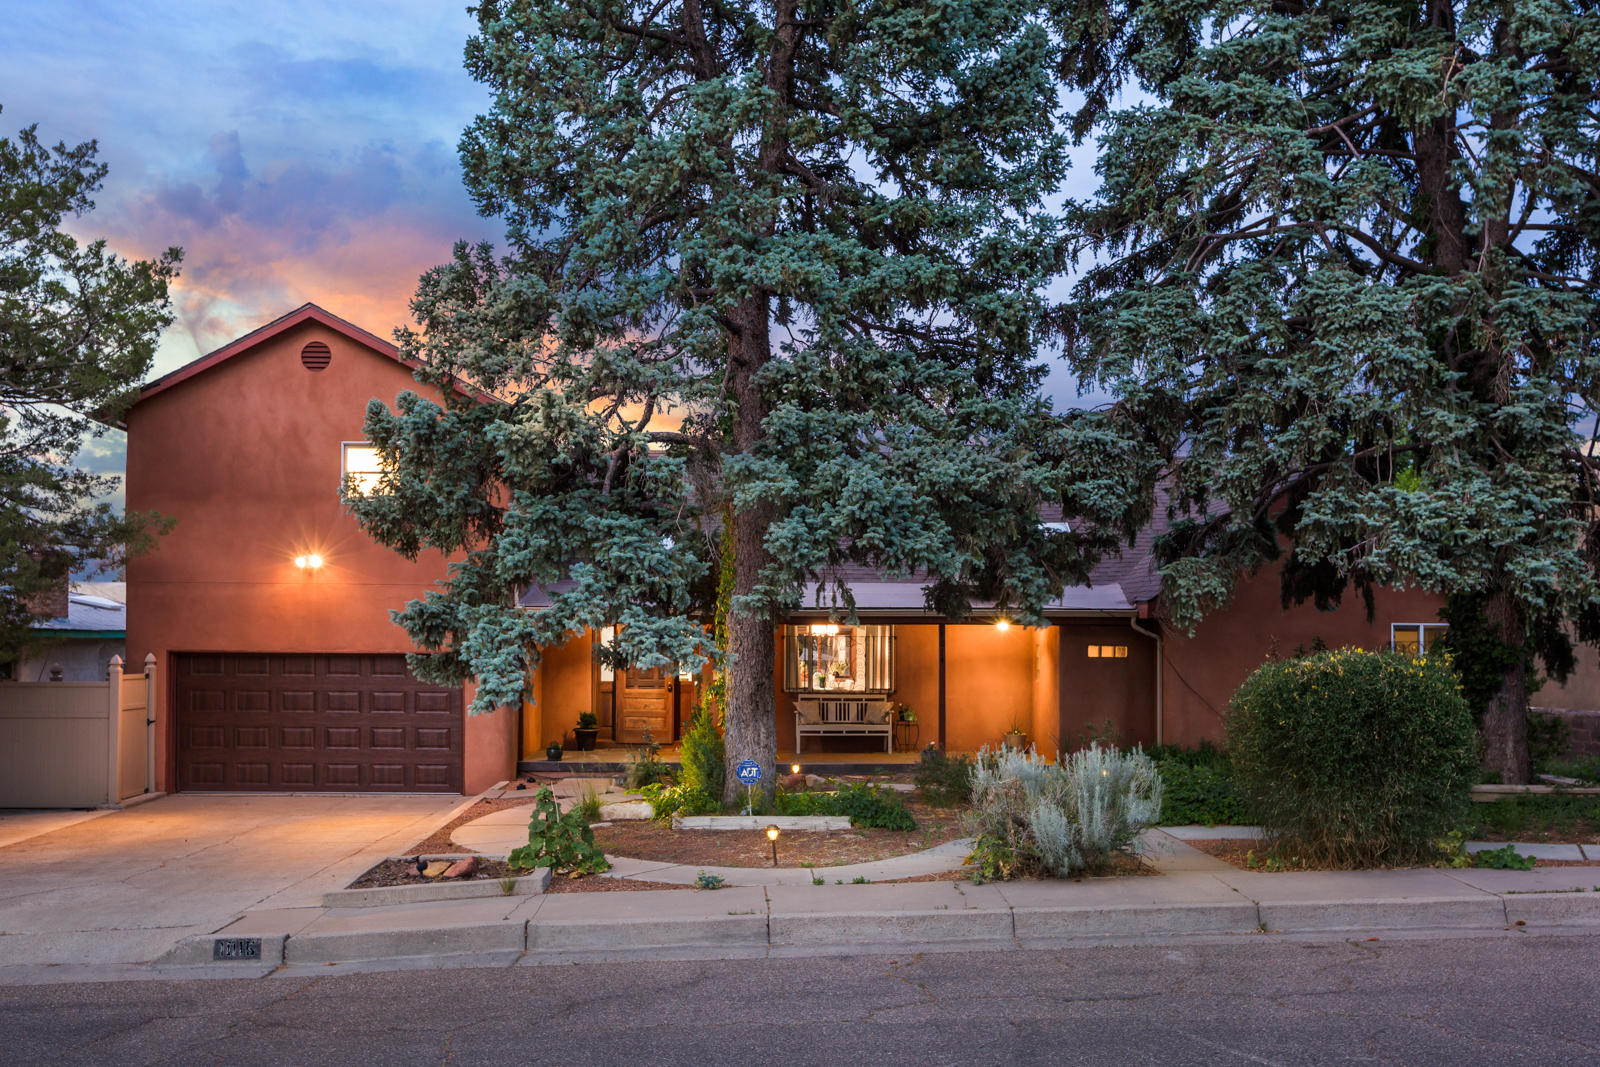 Welcome to this lovely Ridgecrest home! Northern NM inspired architecture. Multi generational flexible Floorplan! 4 bedrooms, 4 baths - two possible Masters with ensuite. Main Master is up with wonderful mountains views and outside deck. Garden level suite includes living area with fireplace, bedroom, sauna, Jacuzzi hot tub and 3/4 bath. Well designed kitchen with stainless appliances, granite counters and beautiful cabinetry. Two generous living areas, formal living on main level, basement makes perfect hangout space/man cave/bar/you name it! Screen porch for summer dining. Very large backyard complete with newer solid perimeter wall, great for kids and pets. Lovely patio with fire pit, fruit trees and grape vines. The most versatile home in Ridgecrest!